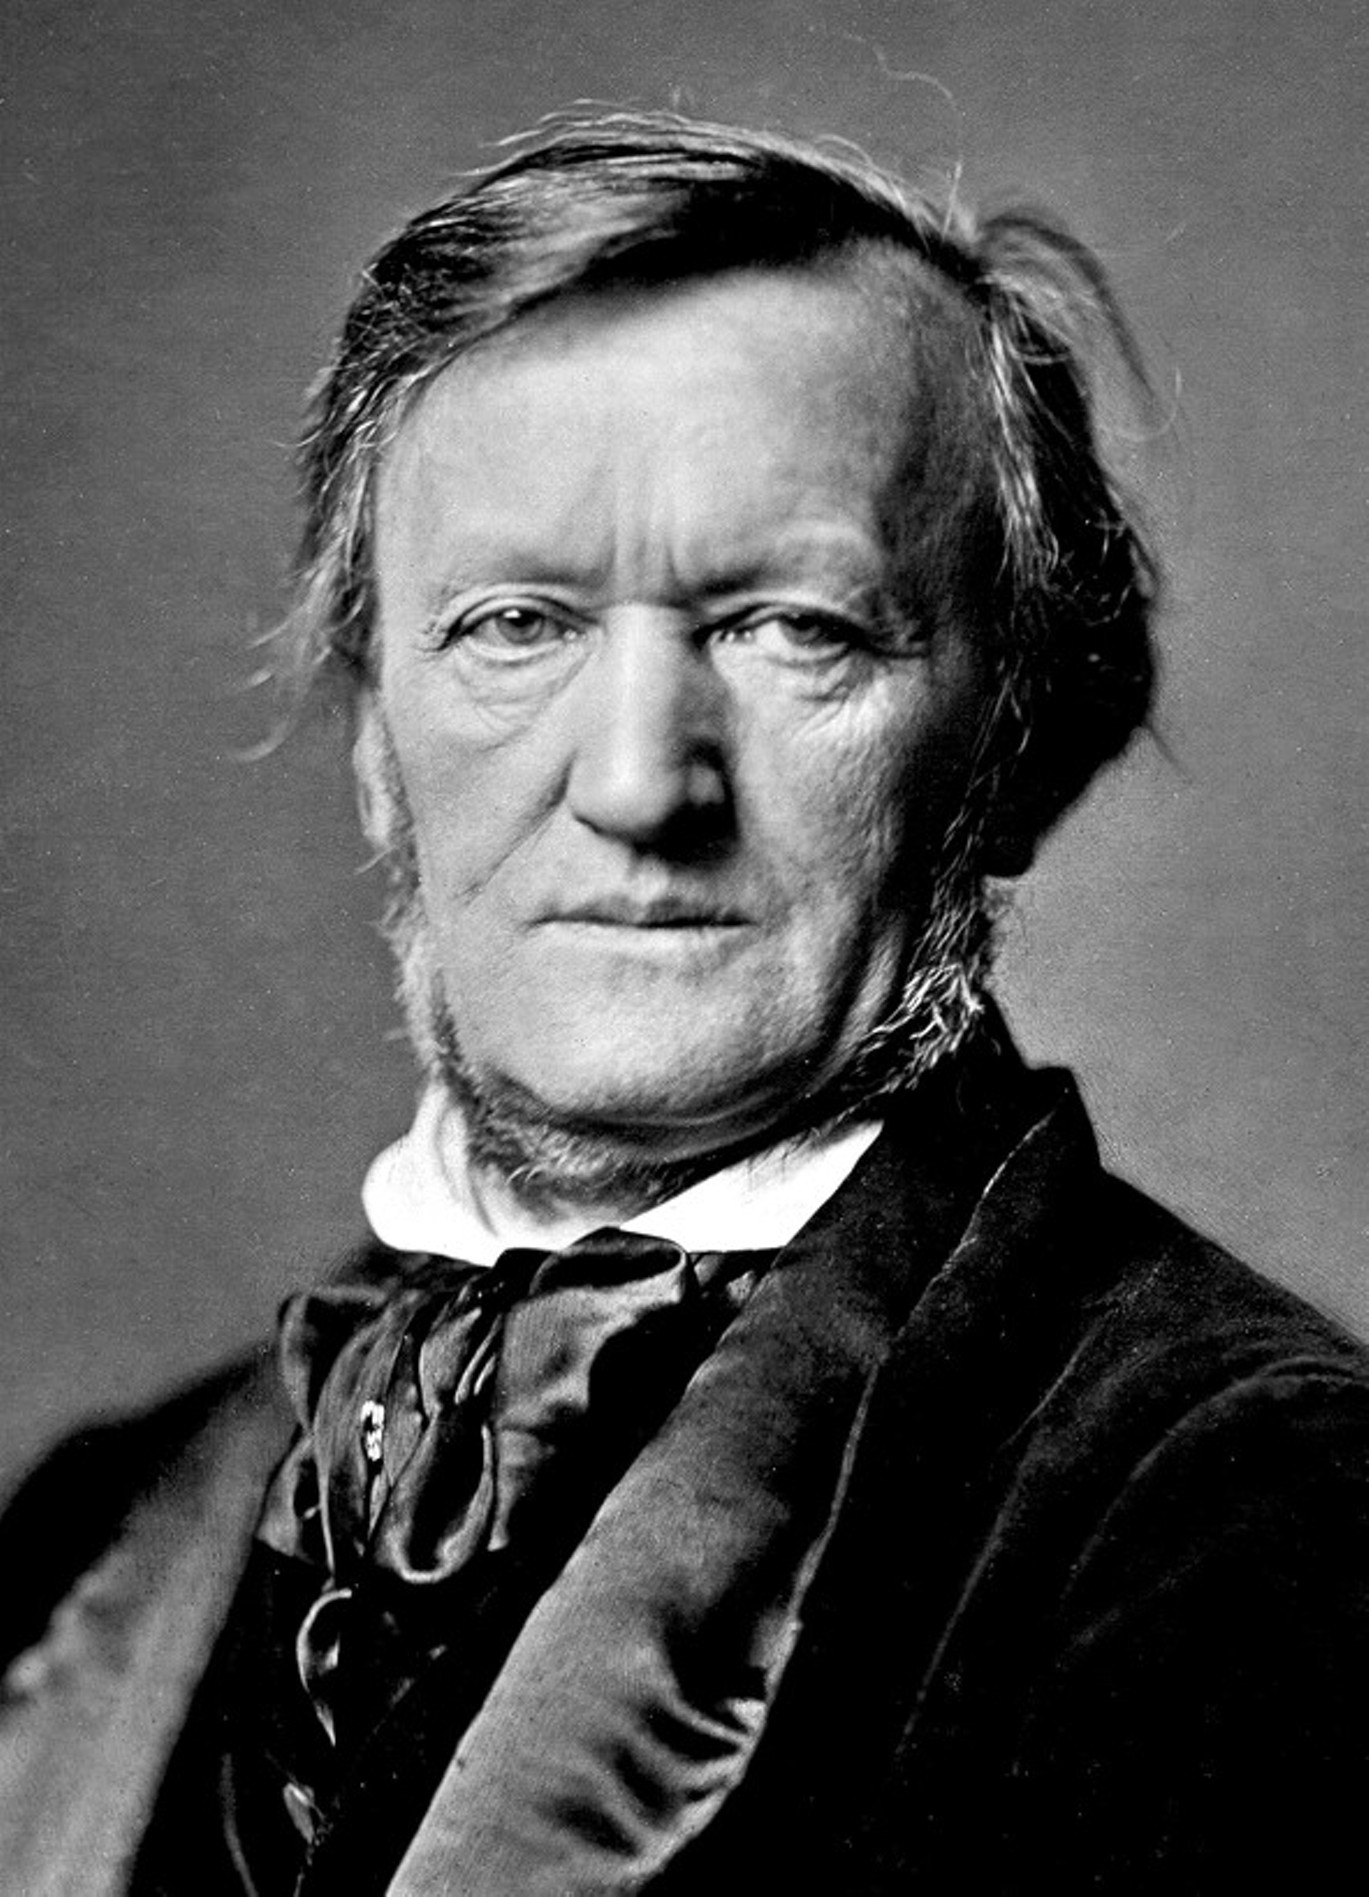 A photo of Richard Wagner